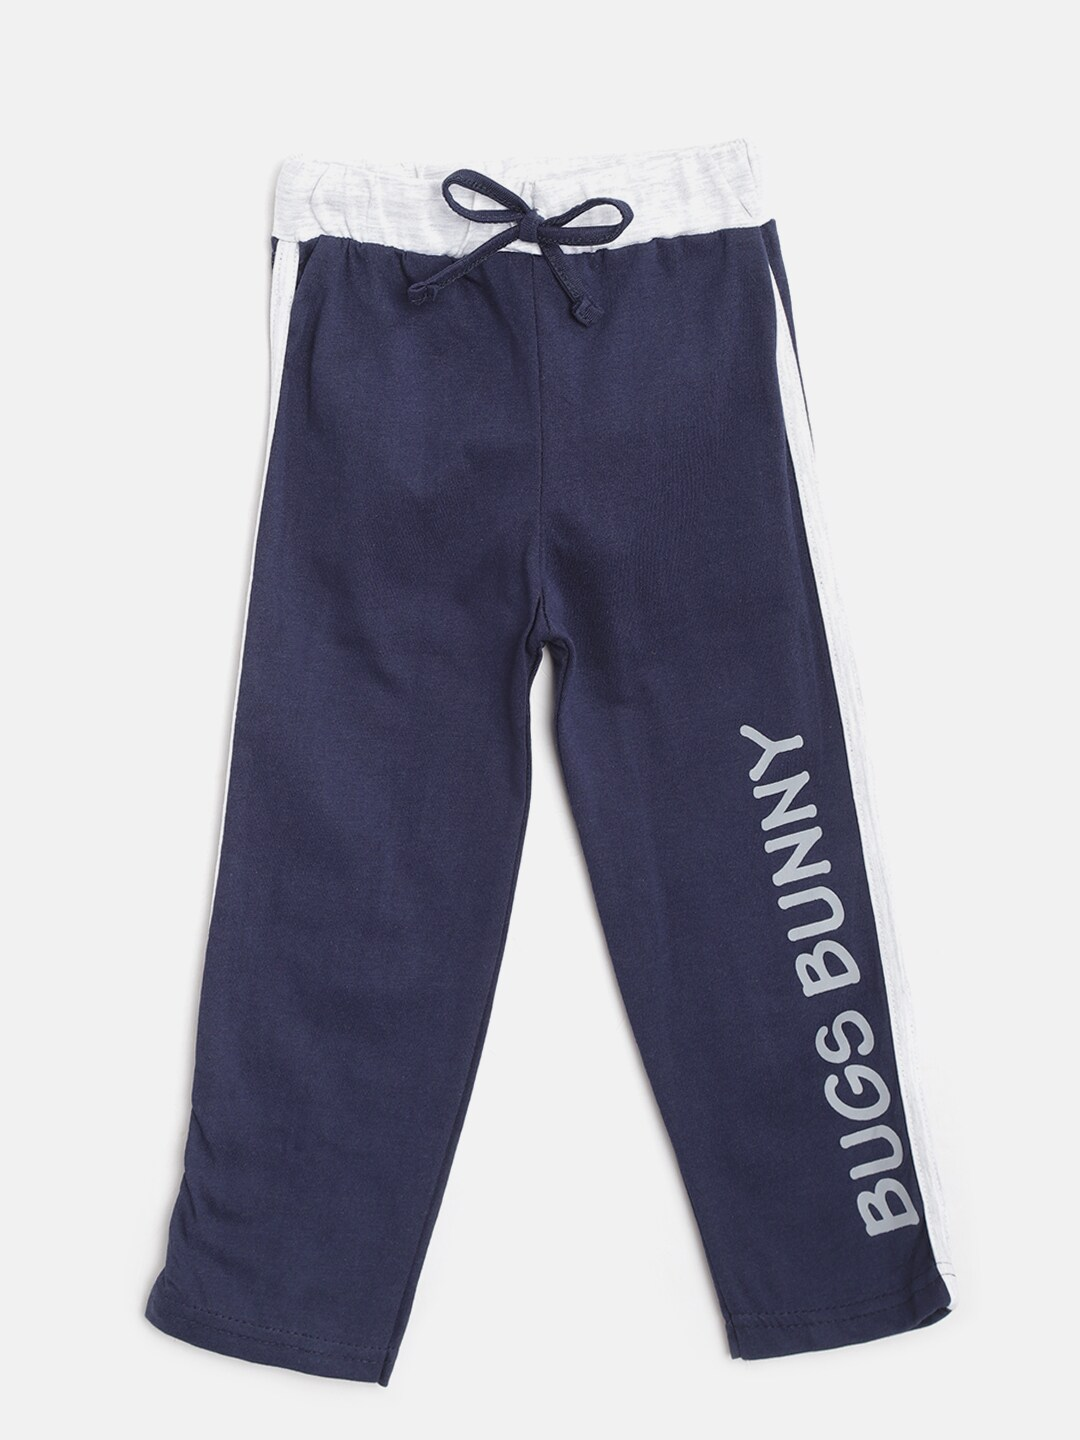 61237a3206e5d5 Girls Trackpants - Buy Girls Trackpants online in India